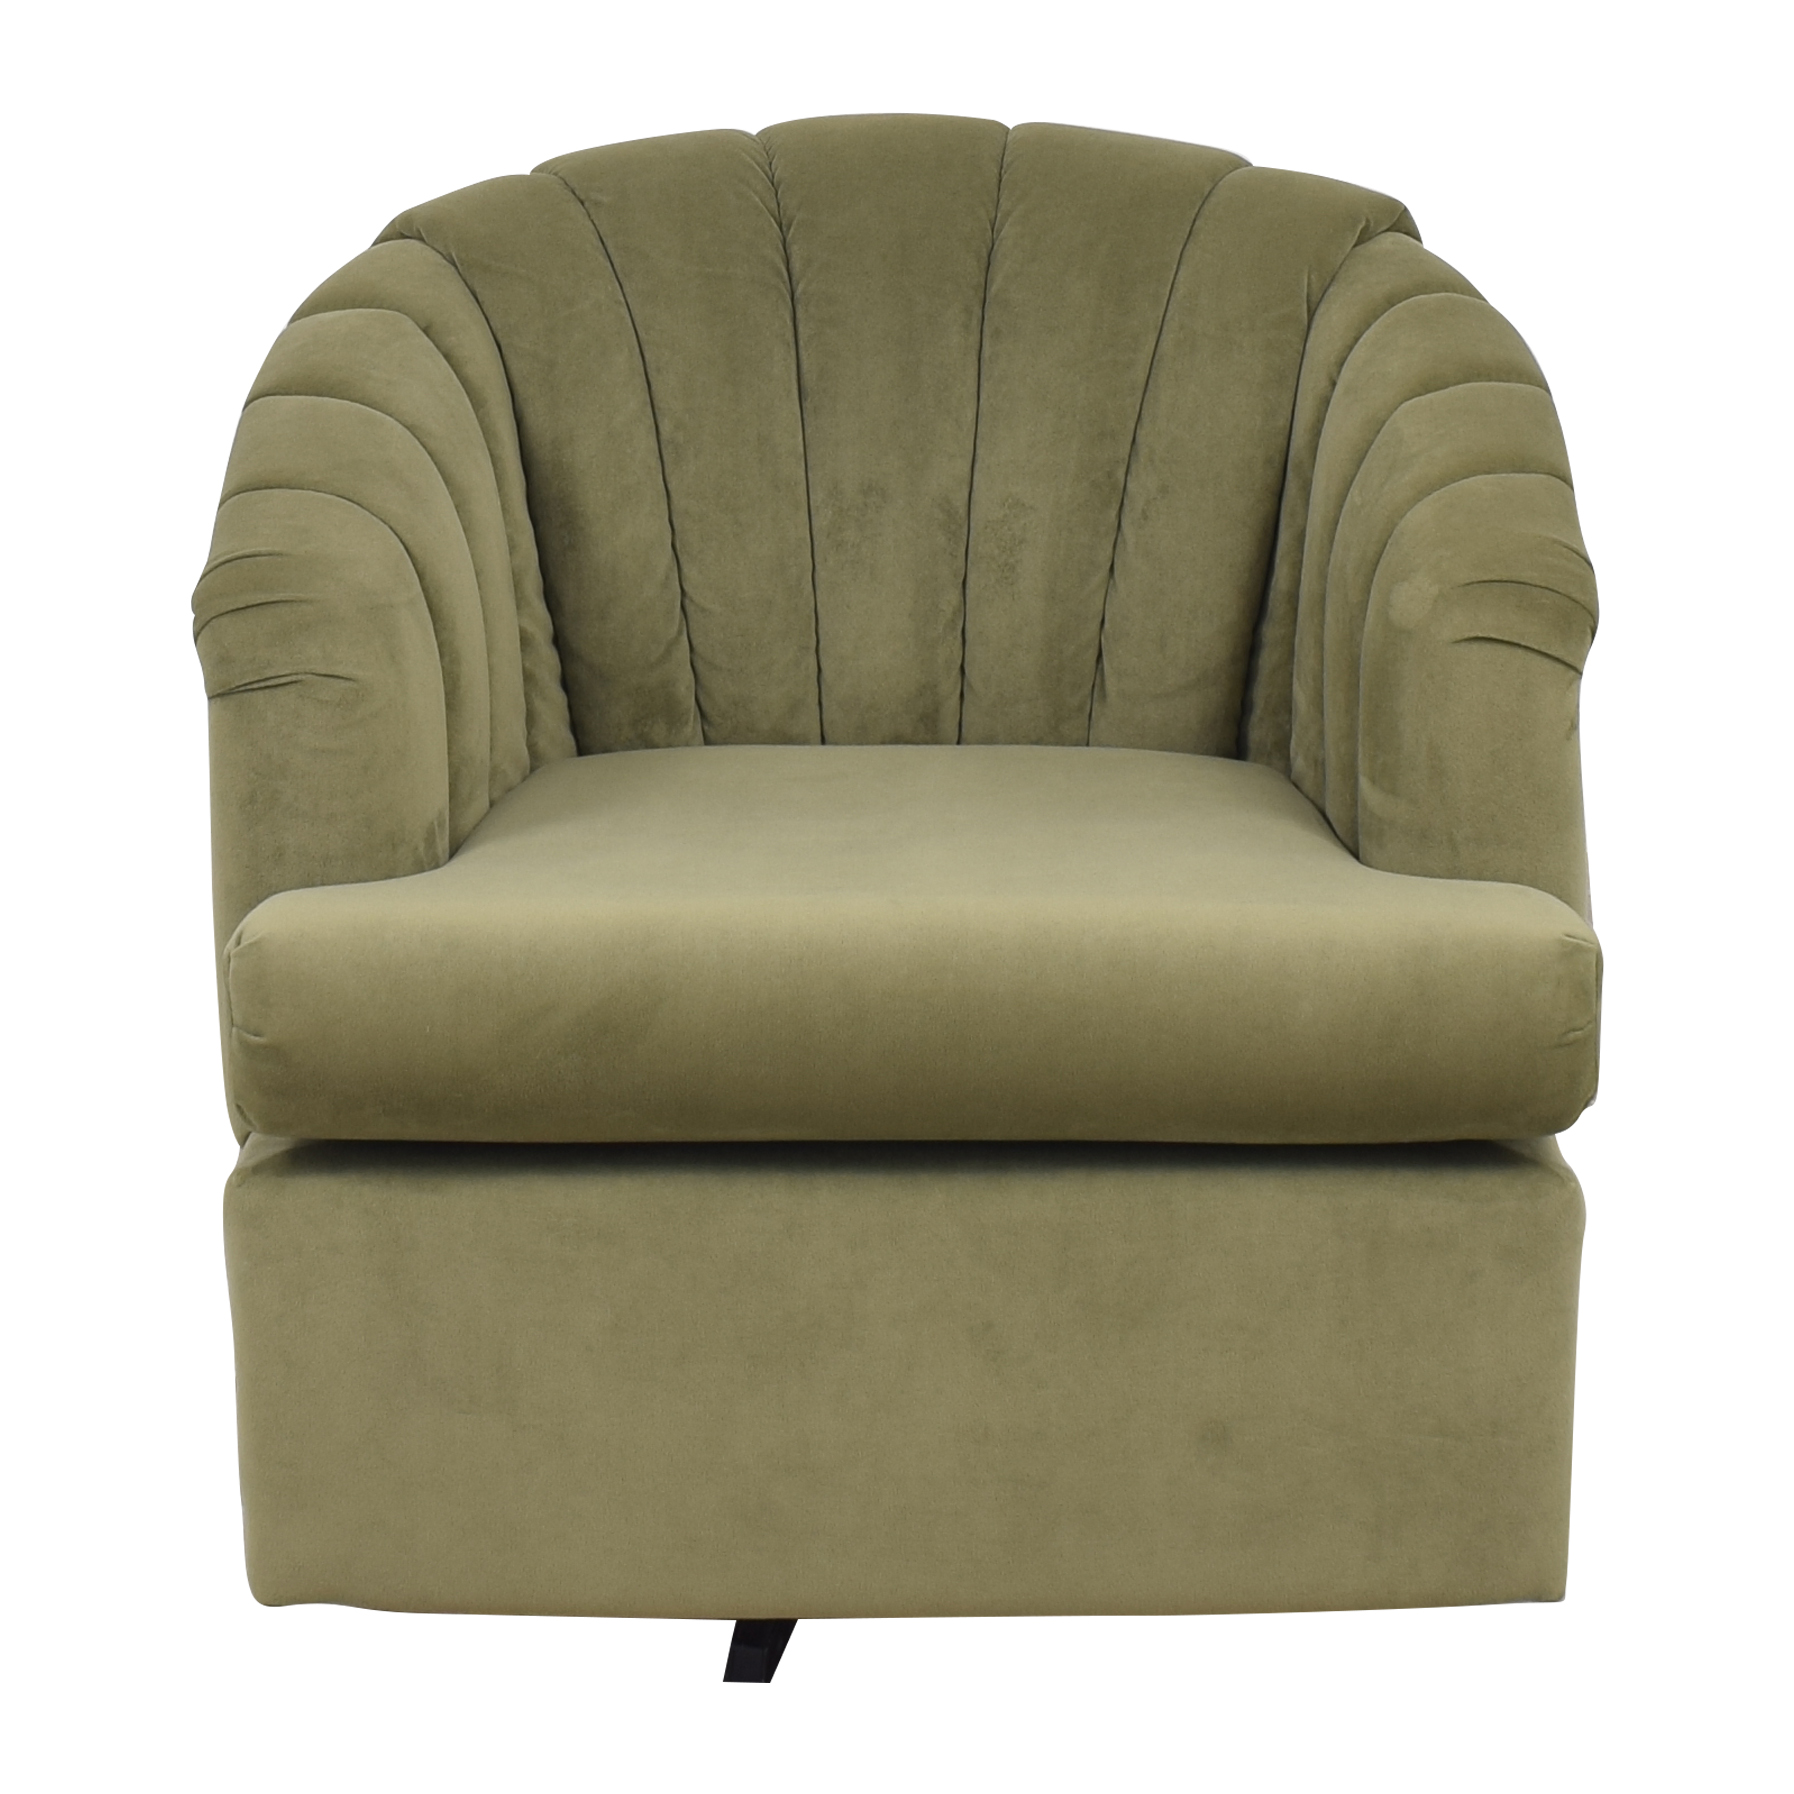 Best Chairs Best Chairs Elaine Swivel Barrel Chair second hand